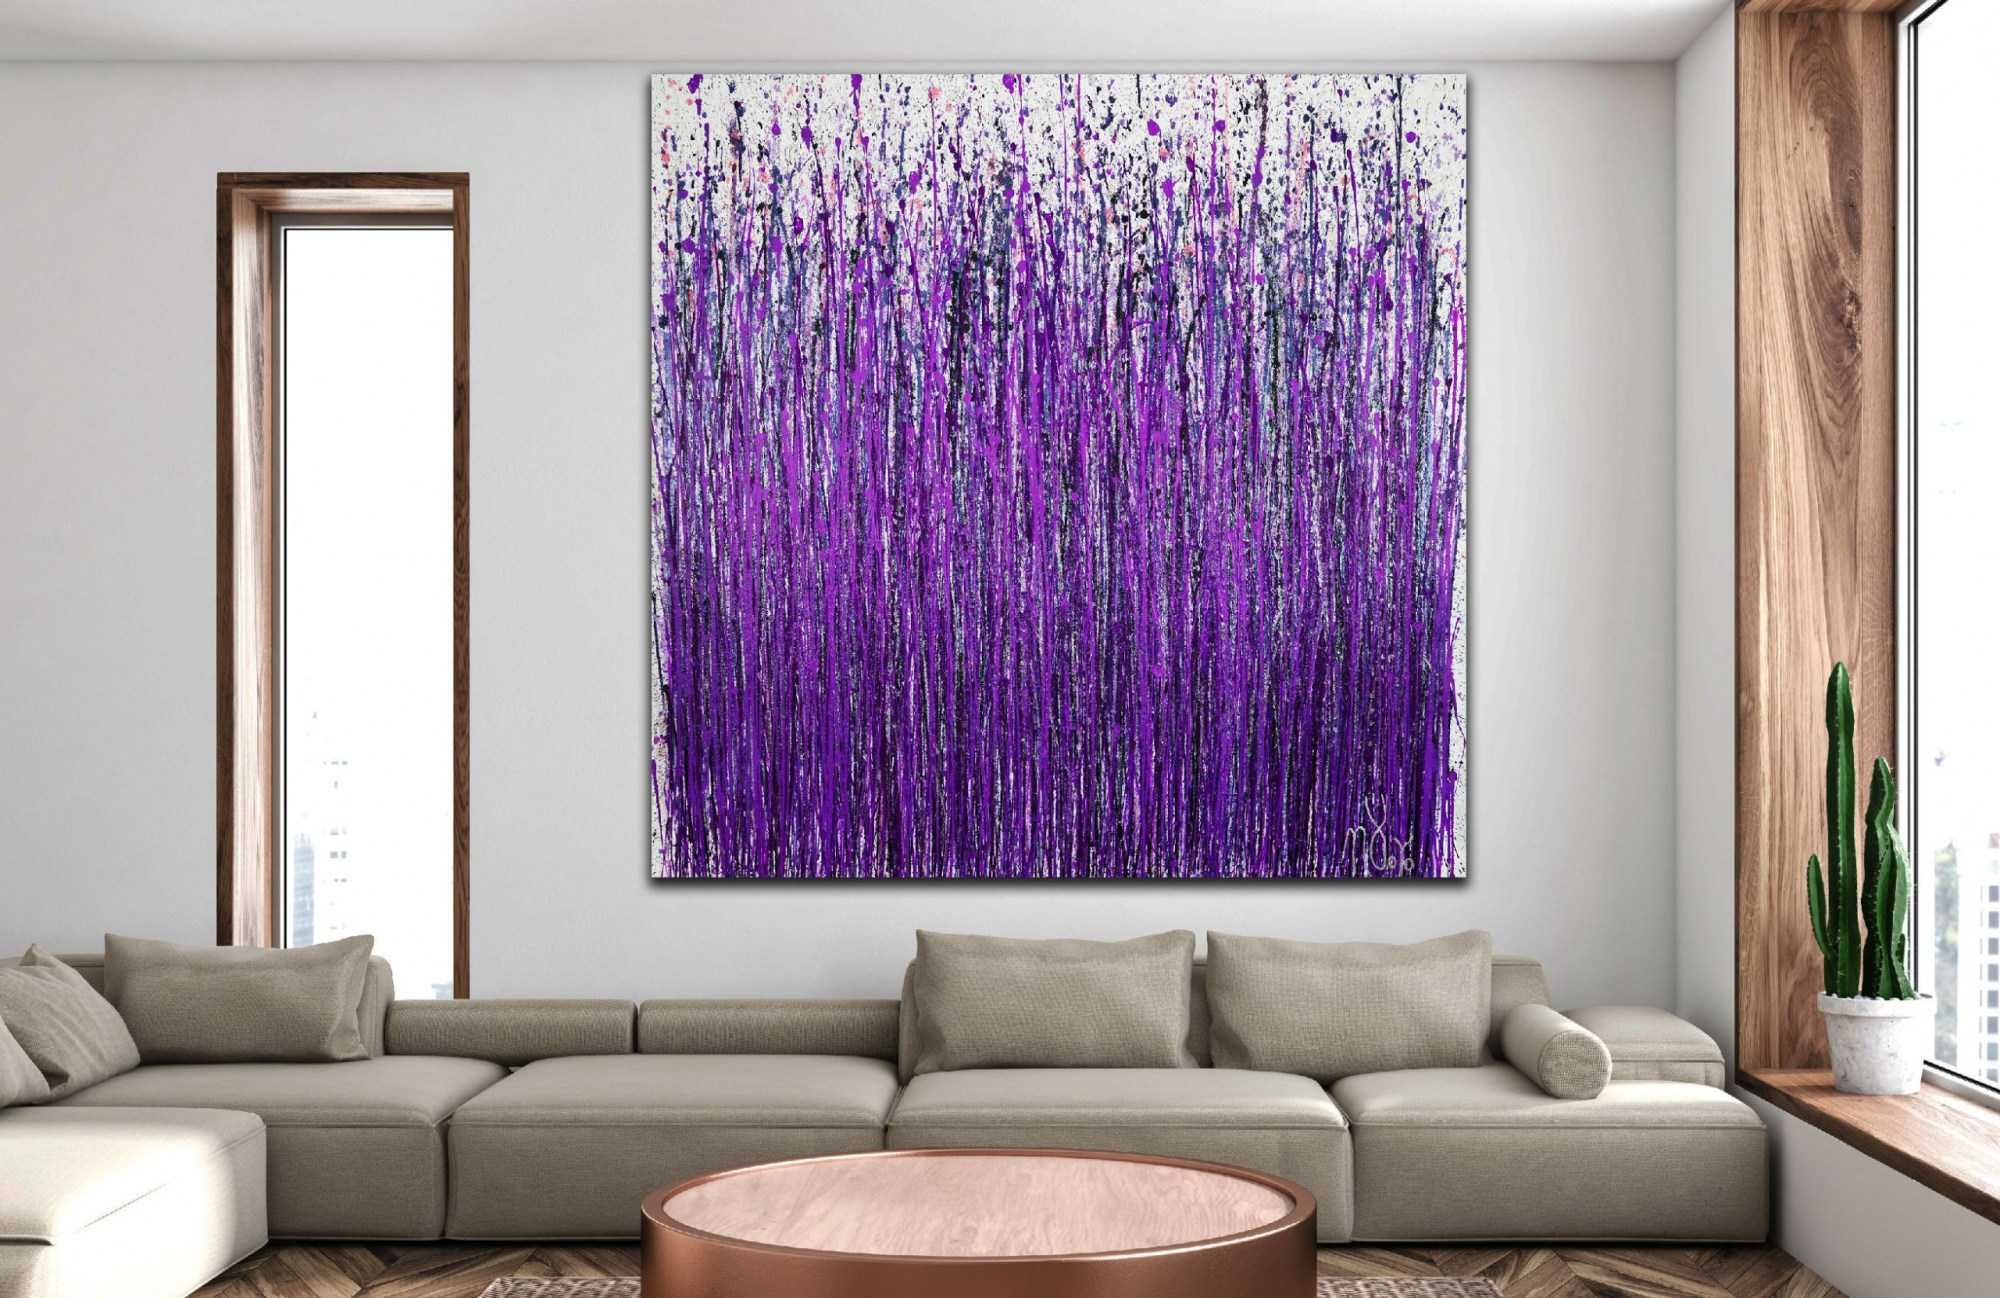 Room-1 Full-canvas-Provence (Lavender Imagery) (2020) by Nestor Toro